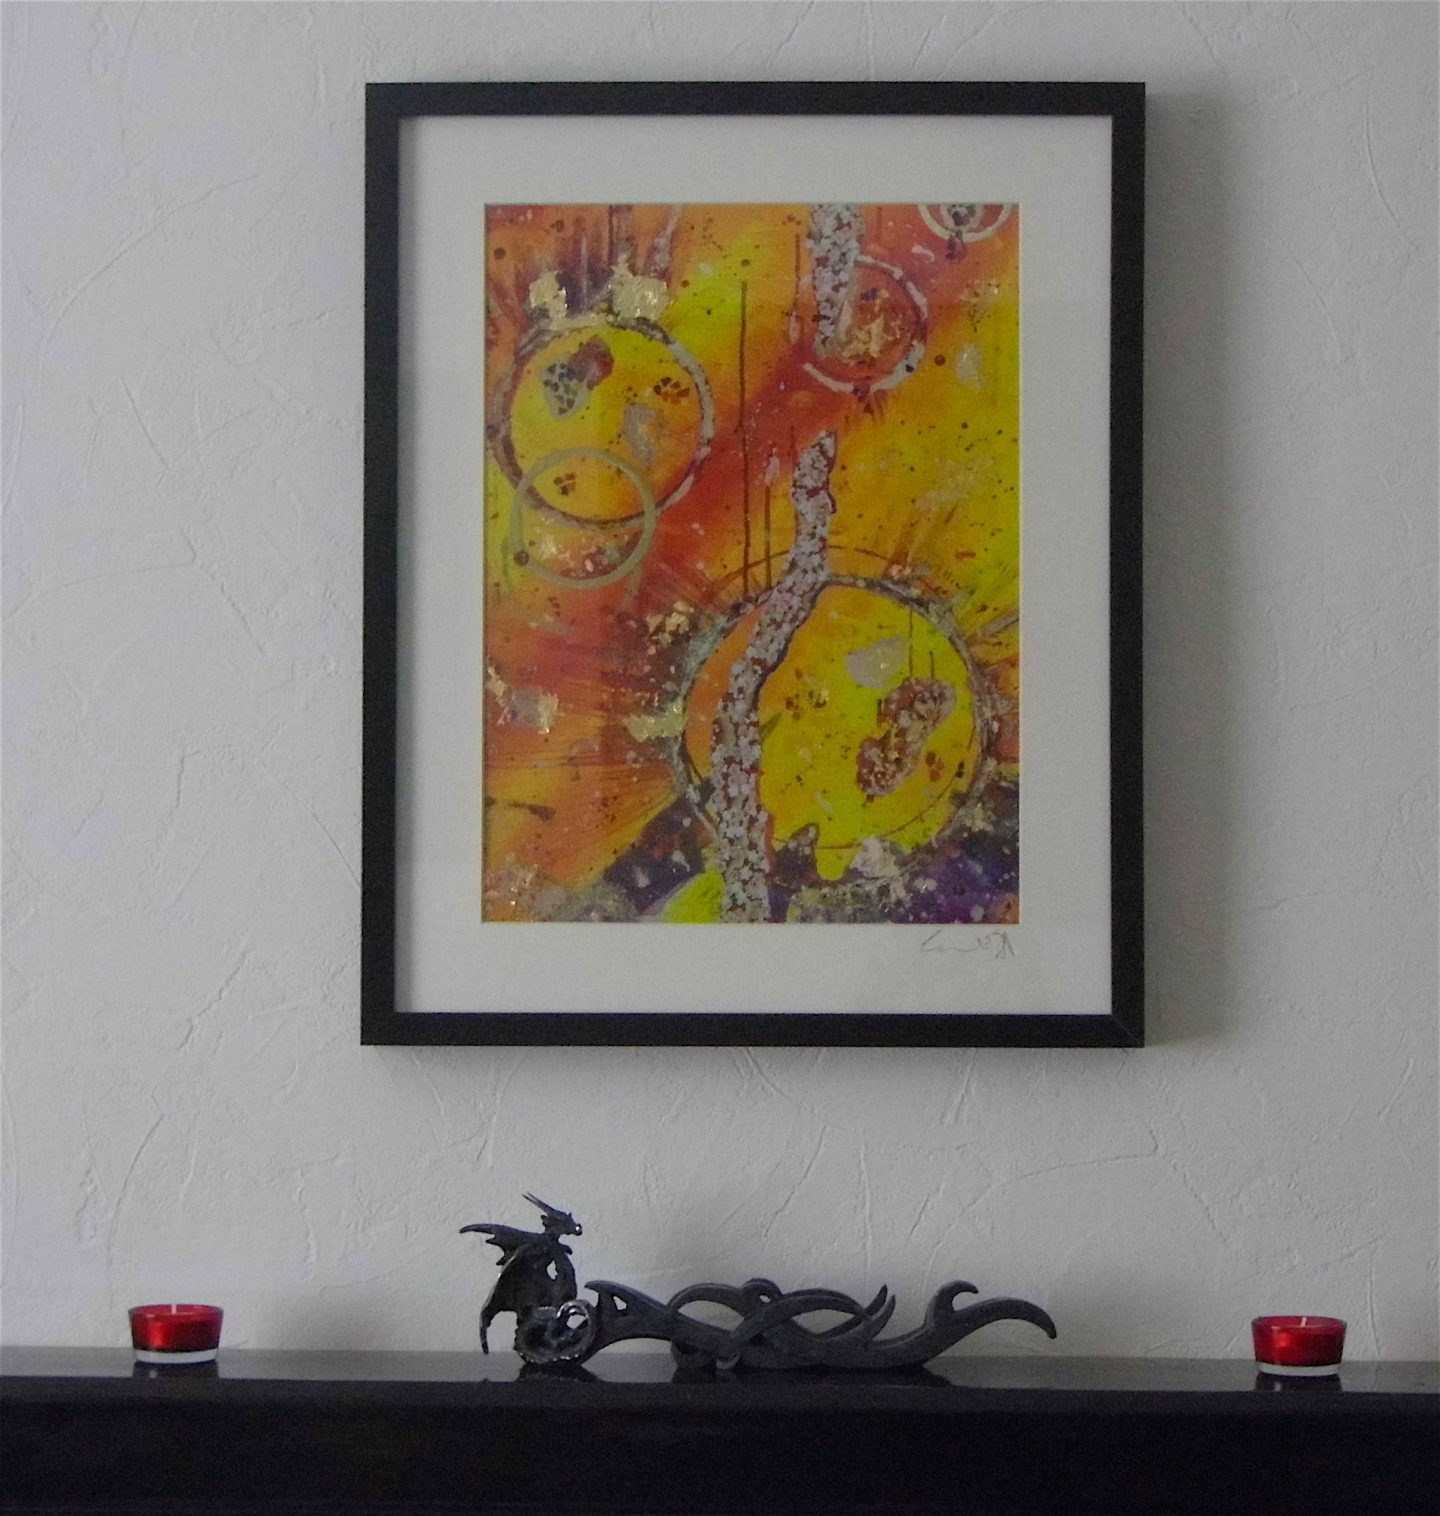 red yellow gold abstract limited edition print emerald dunne art framed